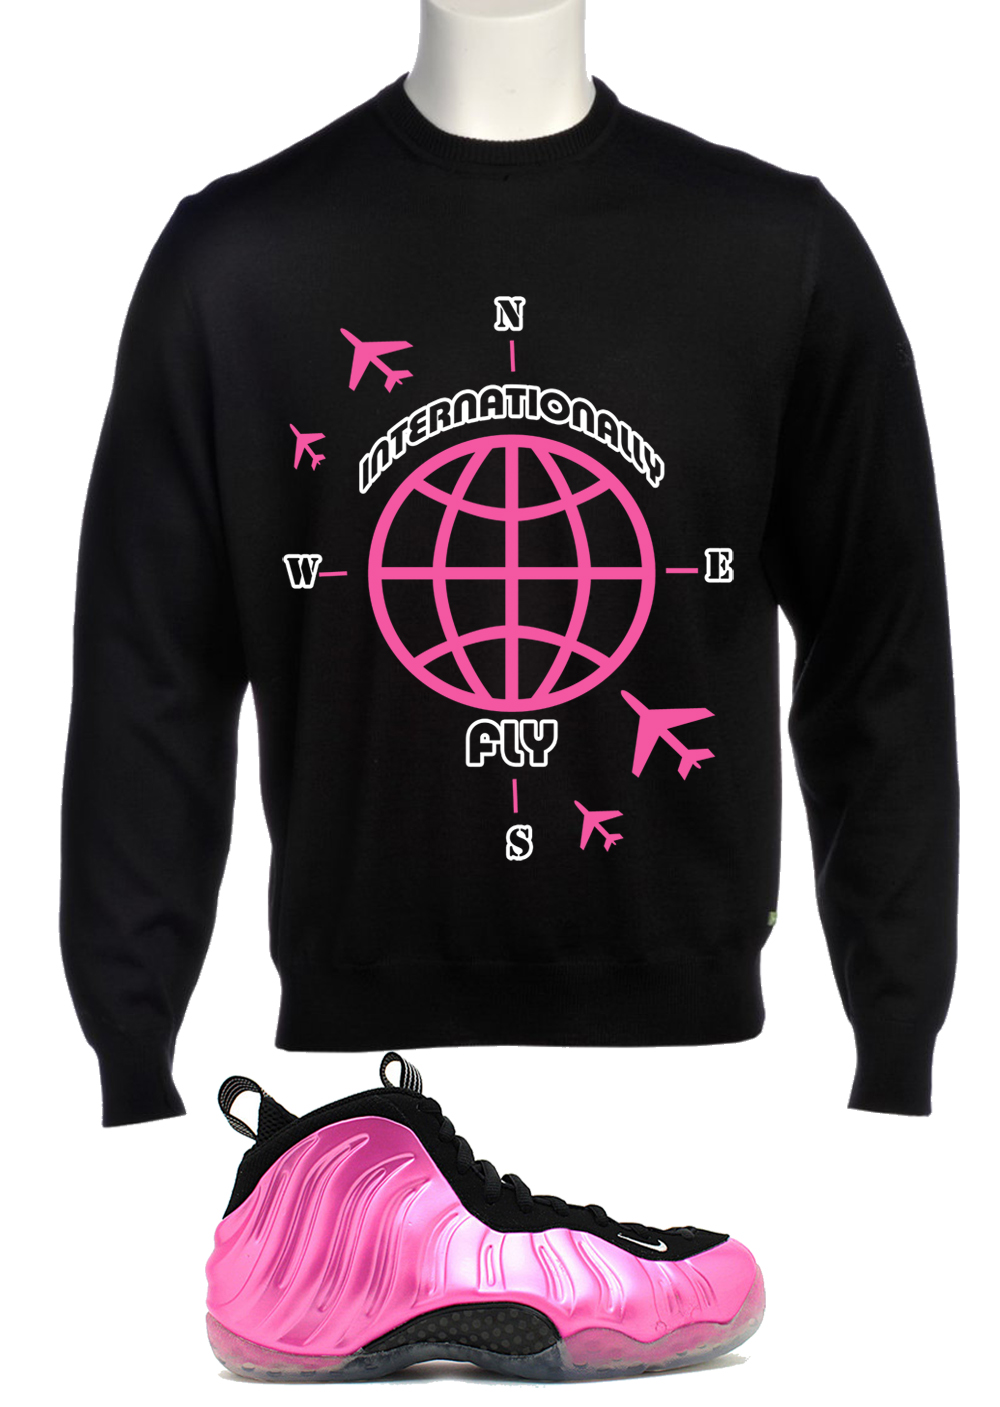 online retailer 77a6b 33ad9 SneakerGeeks Clothing - Internationally Fly Crewneck to ...